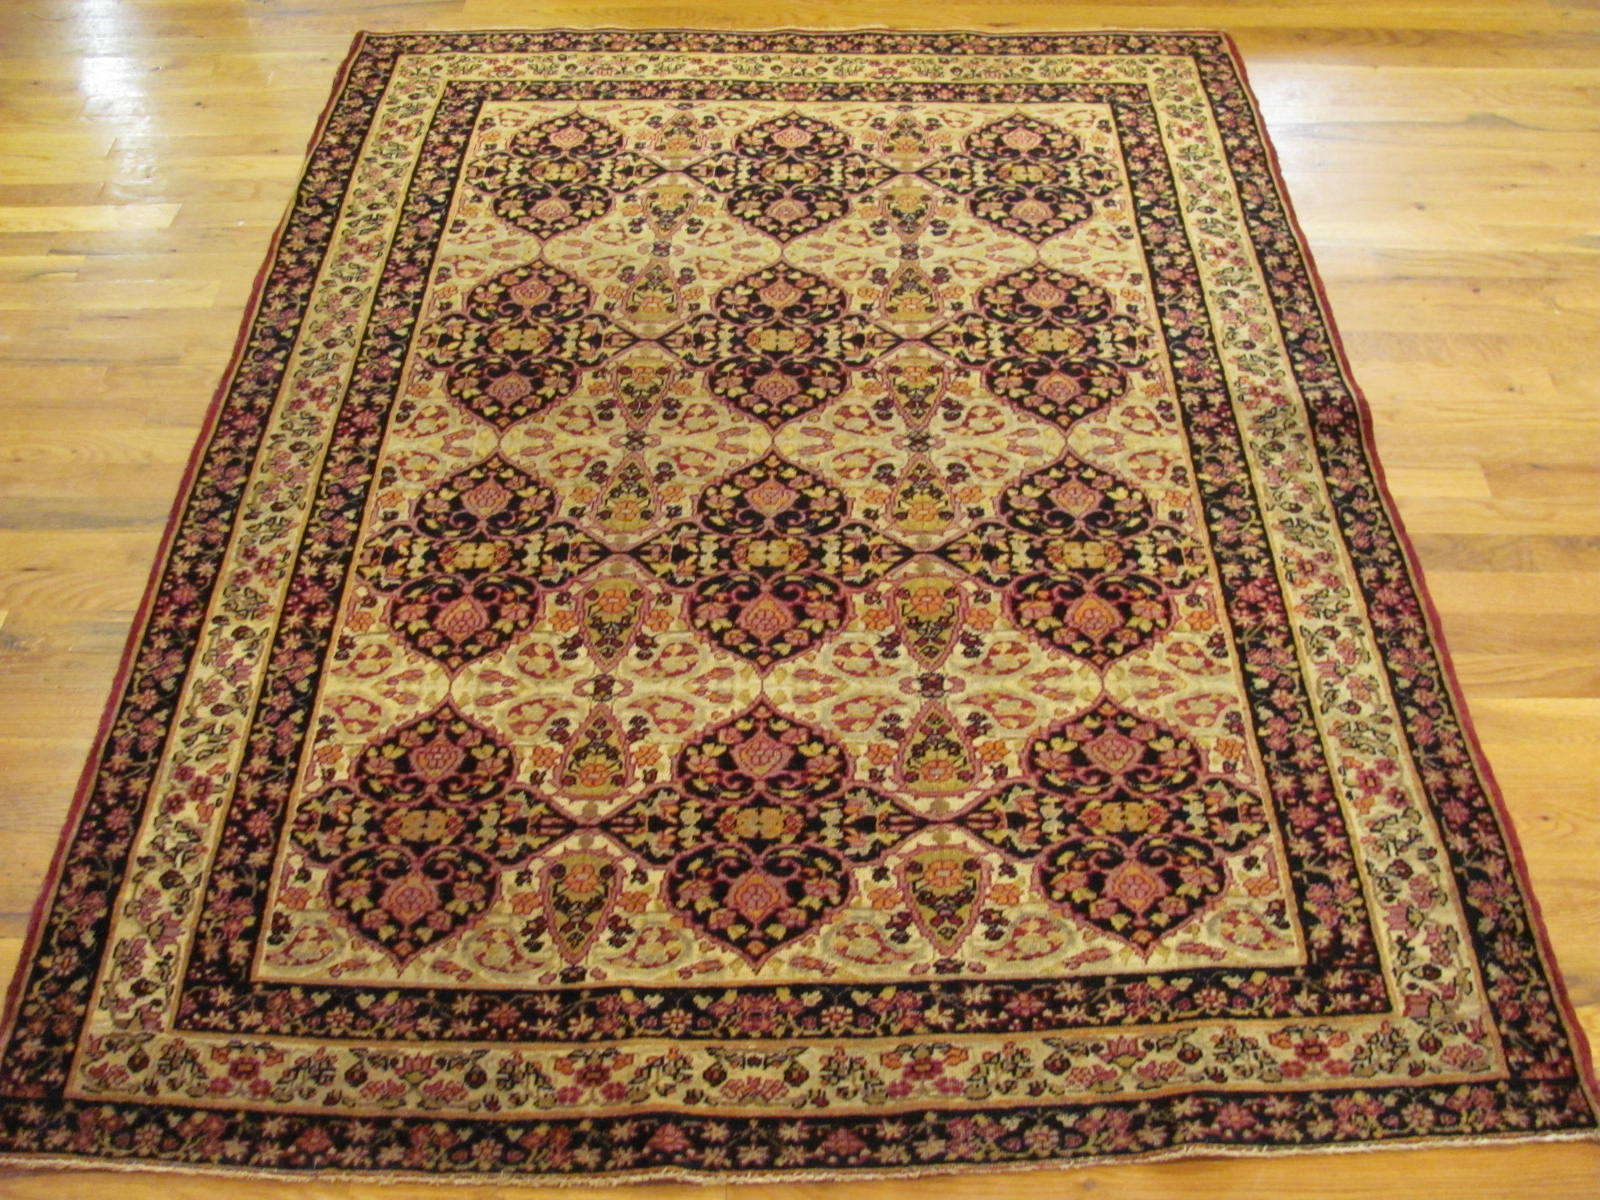 24112 Antique Persian Kirman Lavar rug 4 x 5,10